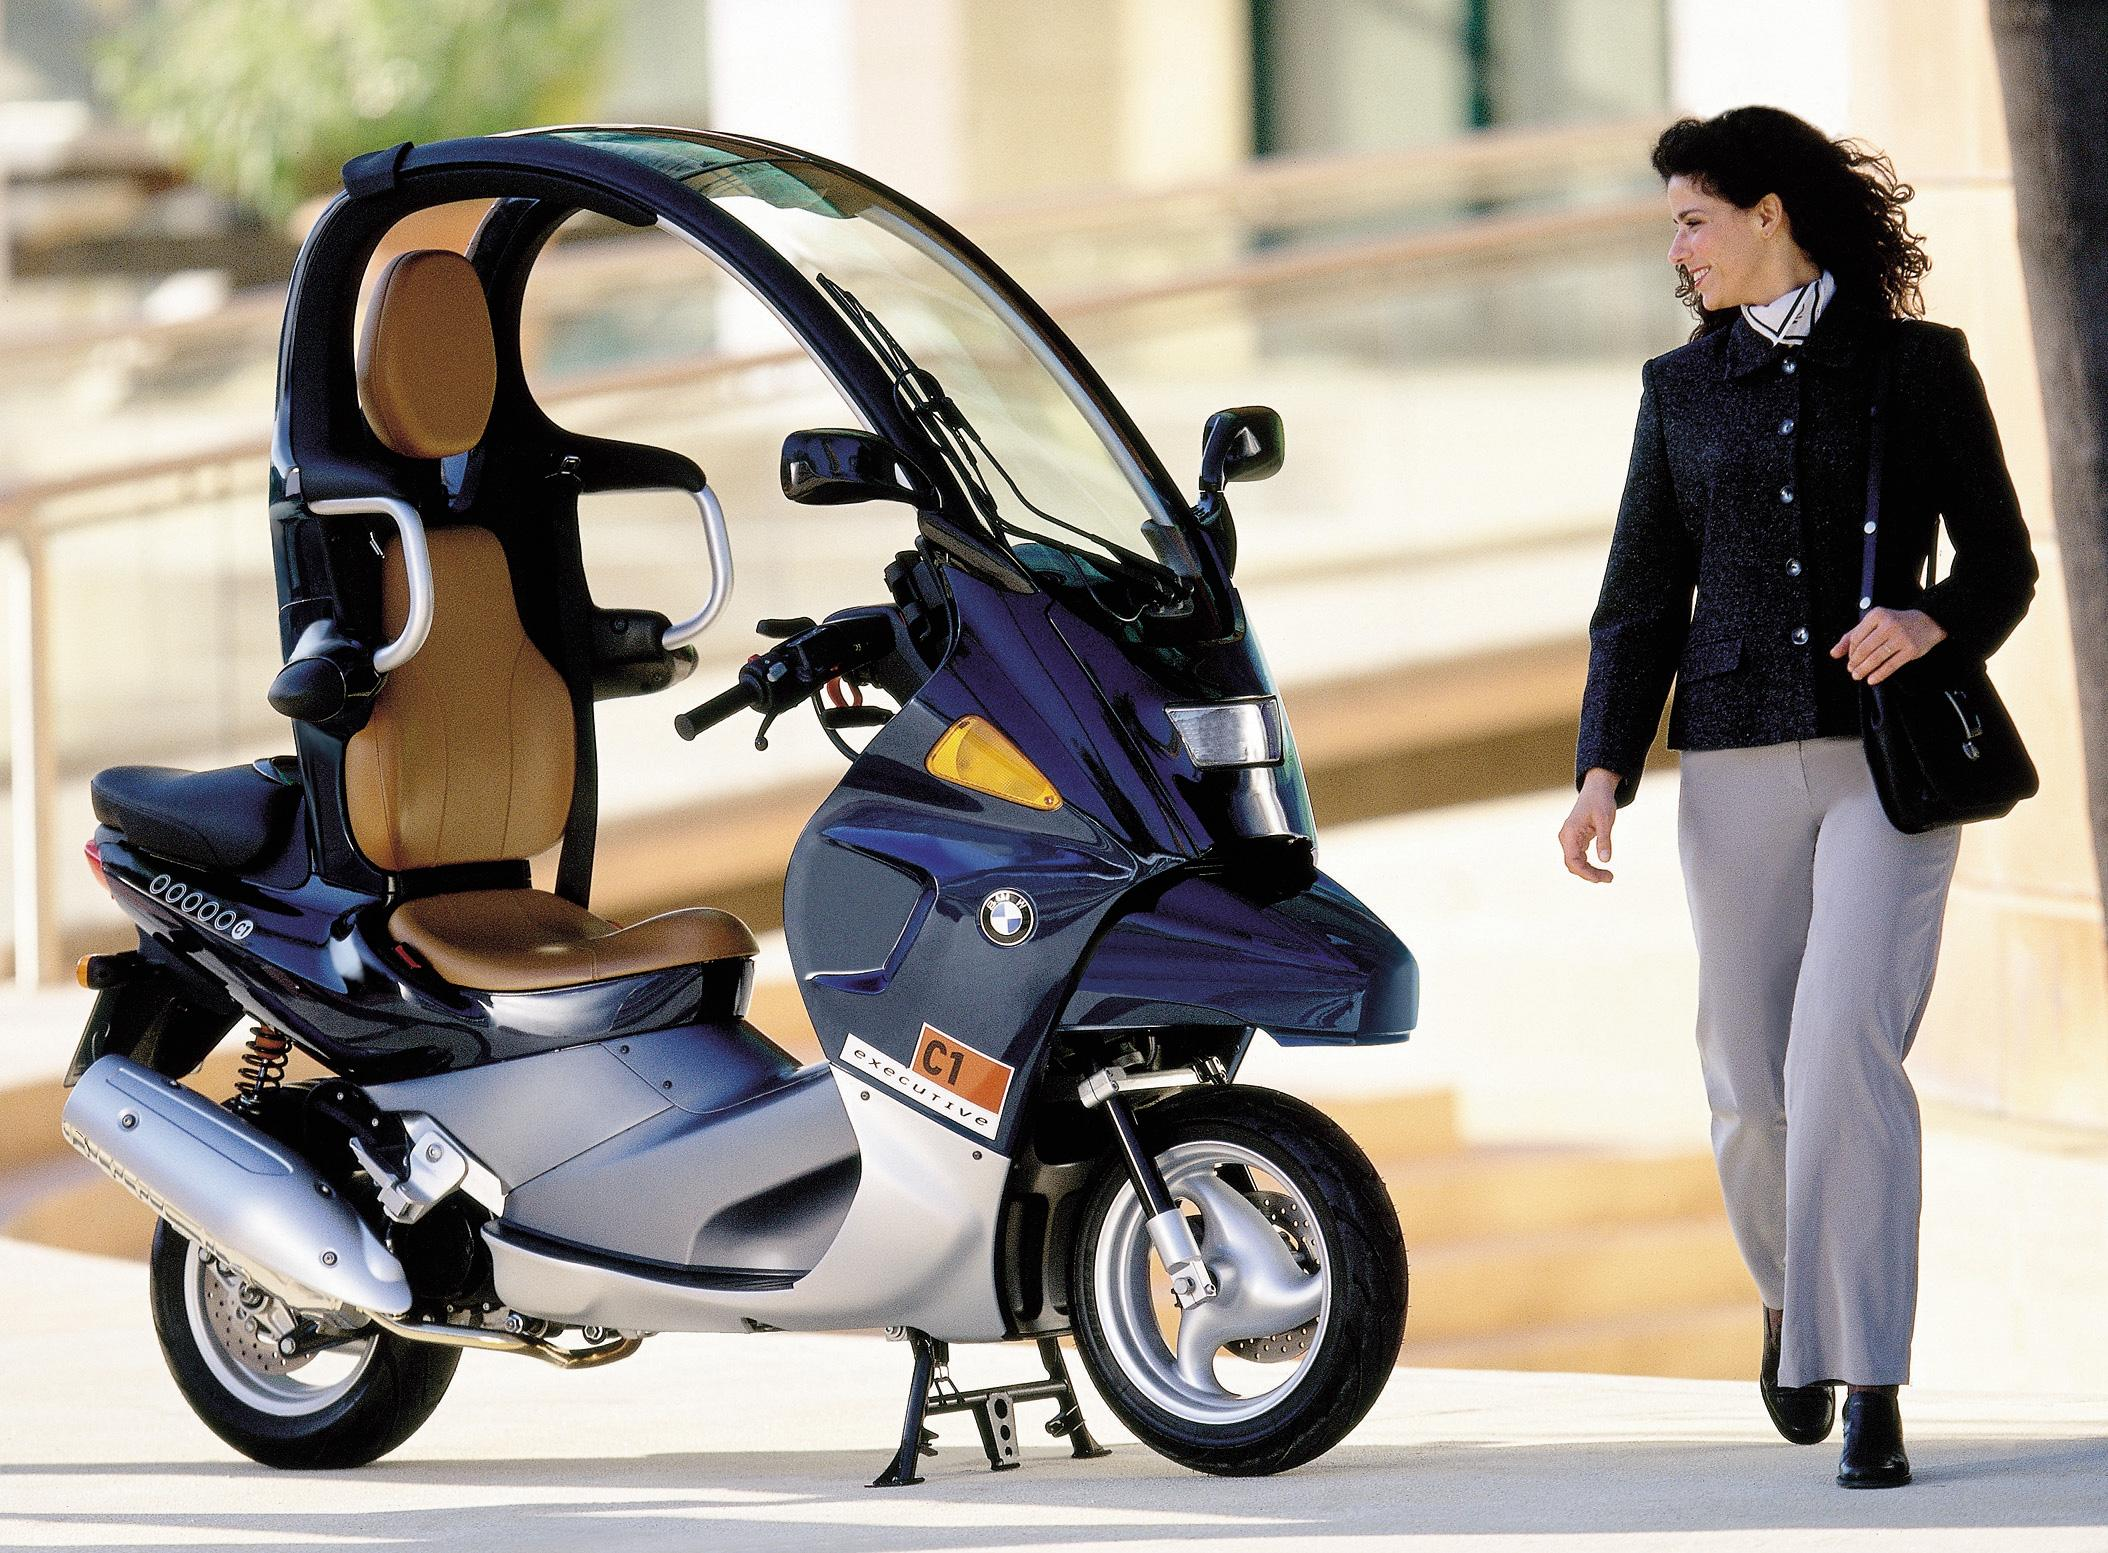 the bmw c1 bmw 39 s first scooter. Black Bedroom Furniture Sets. Home Design Ideas